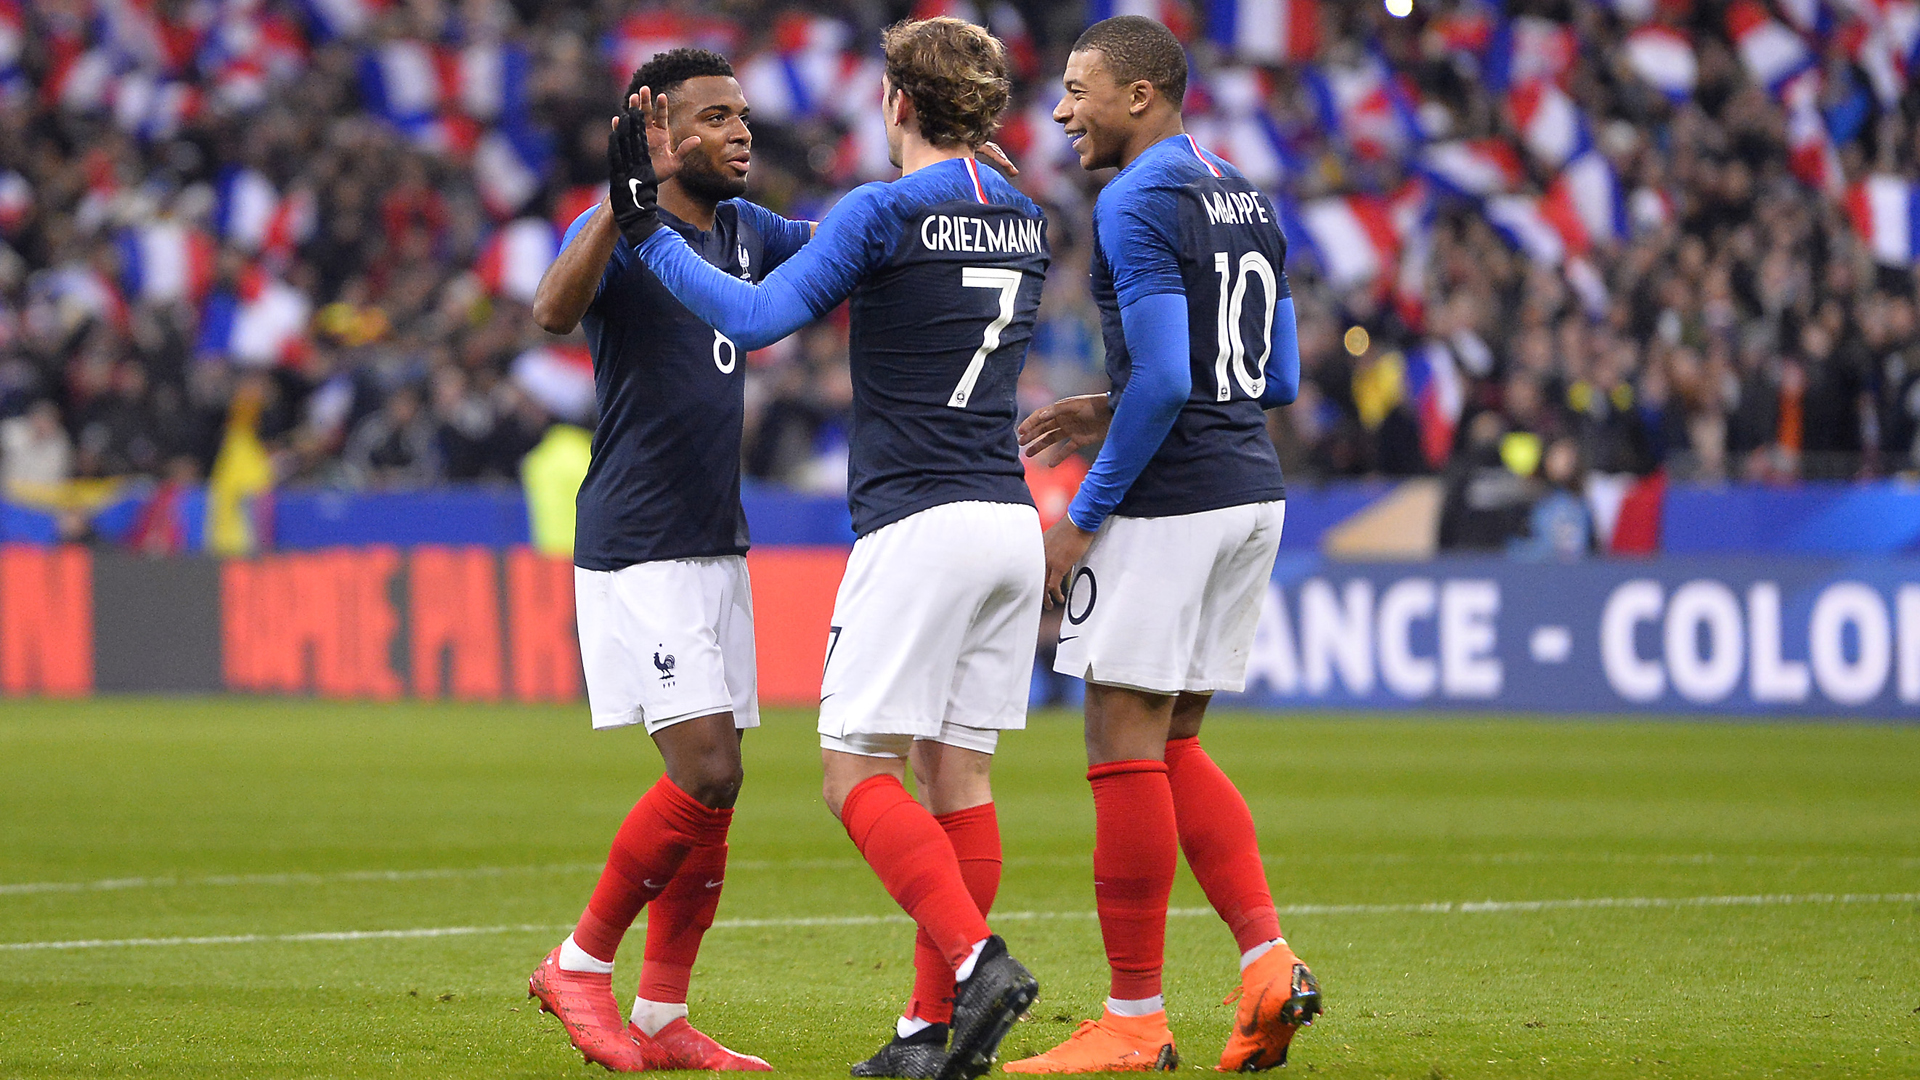 Technology helps France beat gritty Australia 2-1 in Group C